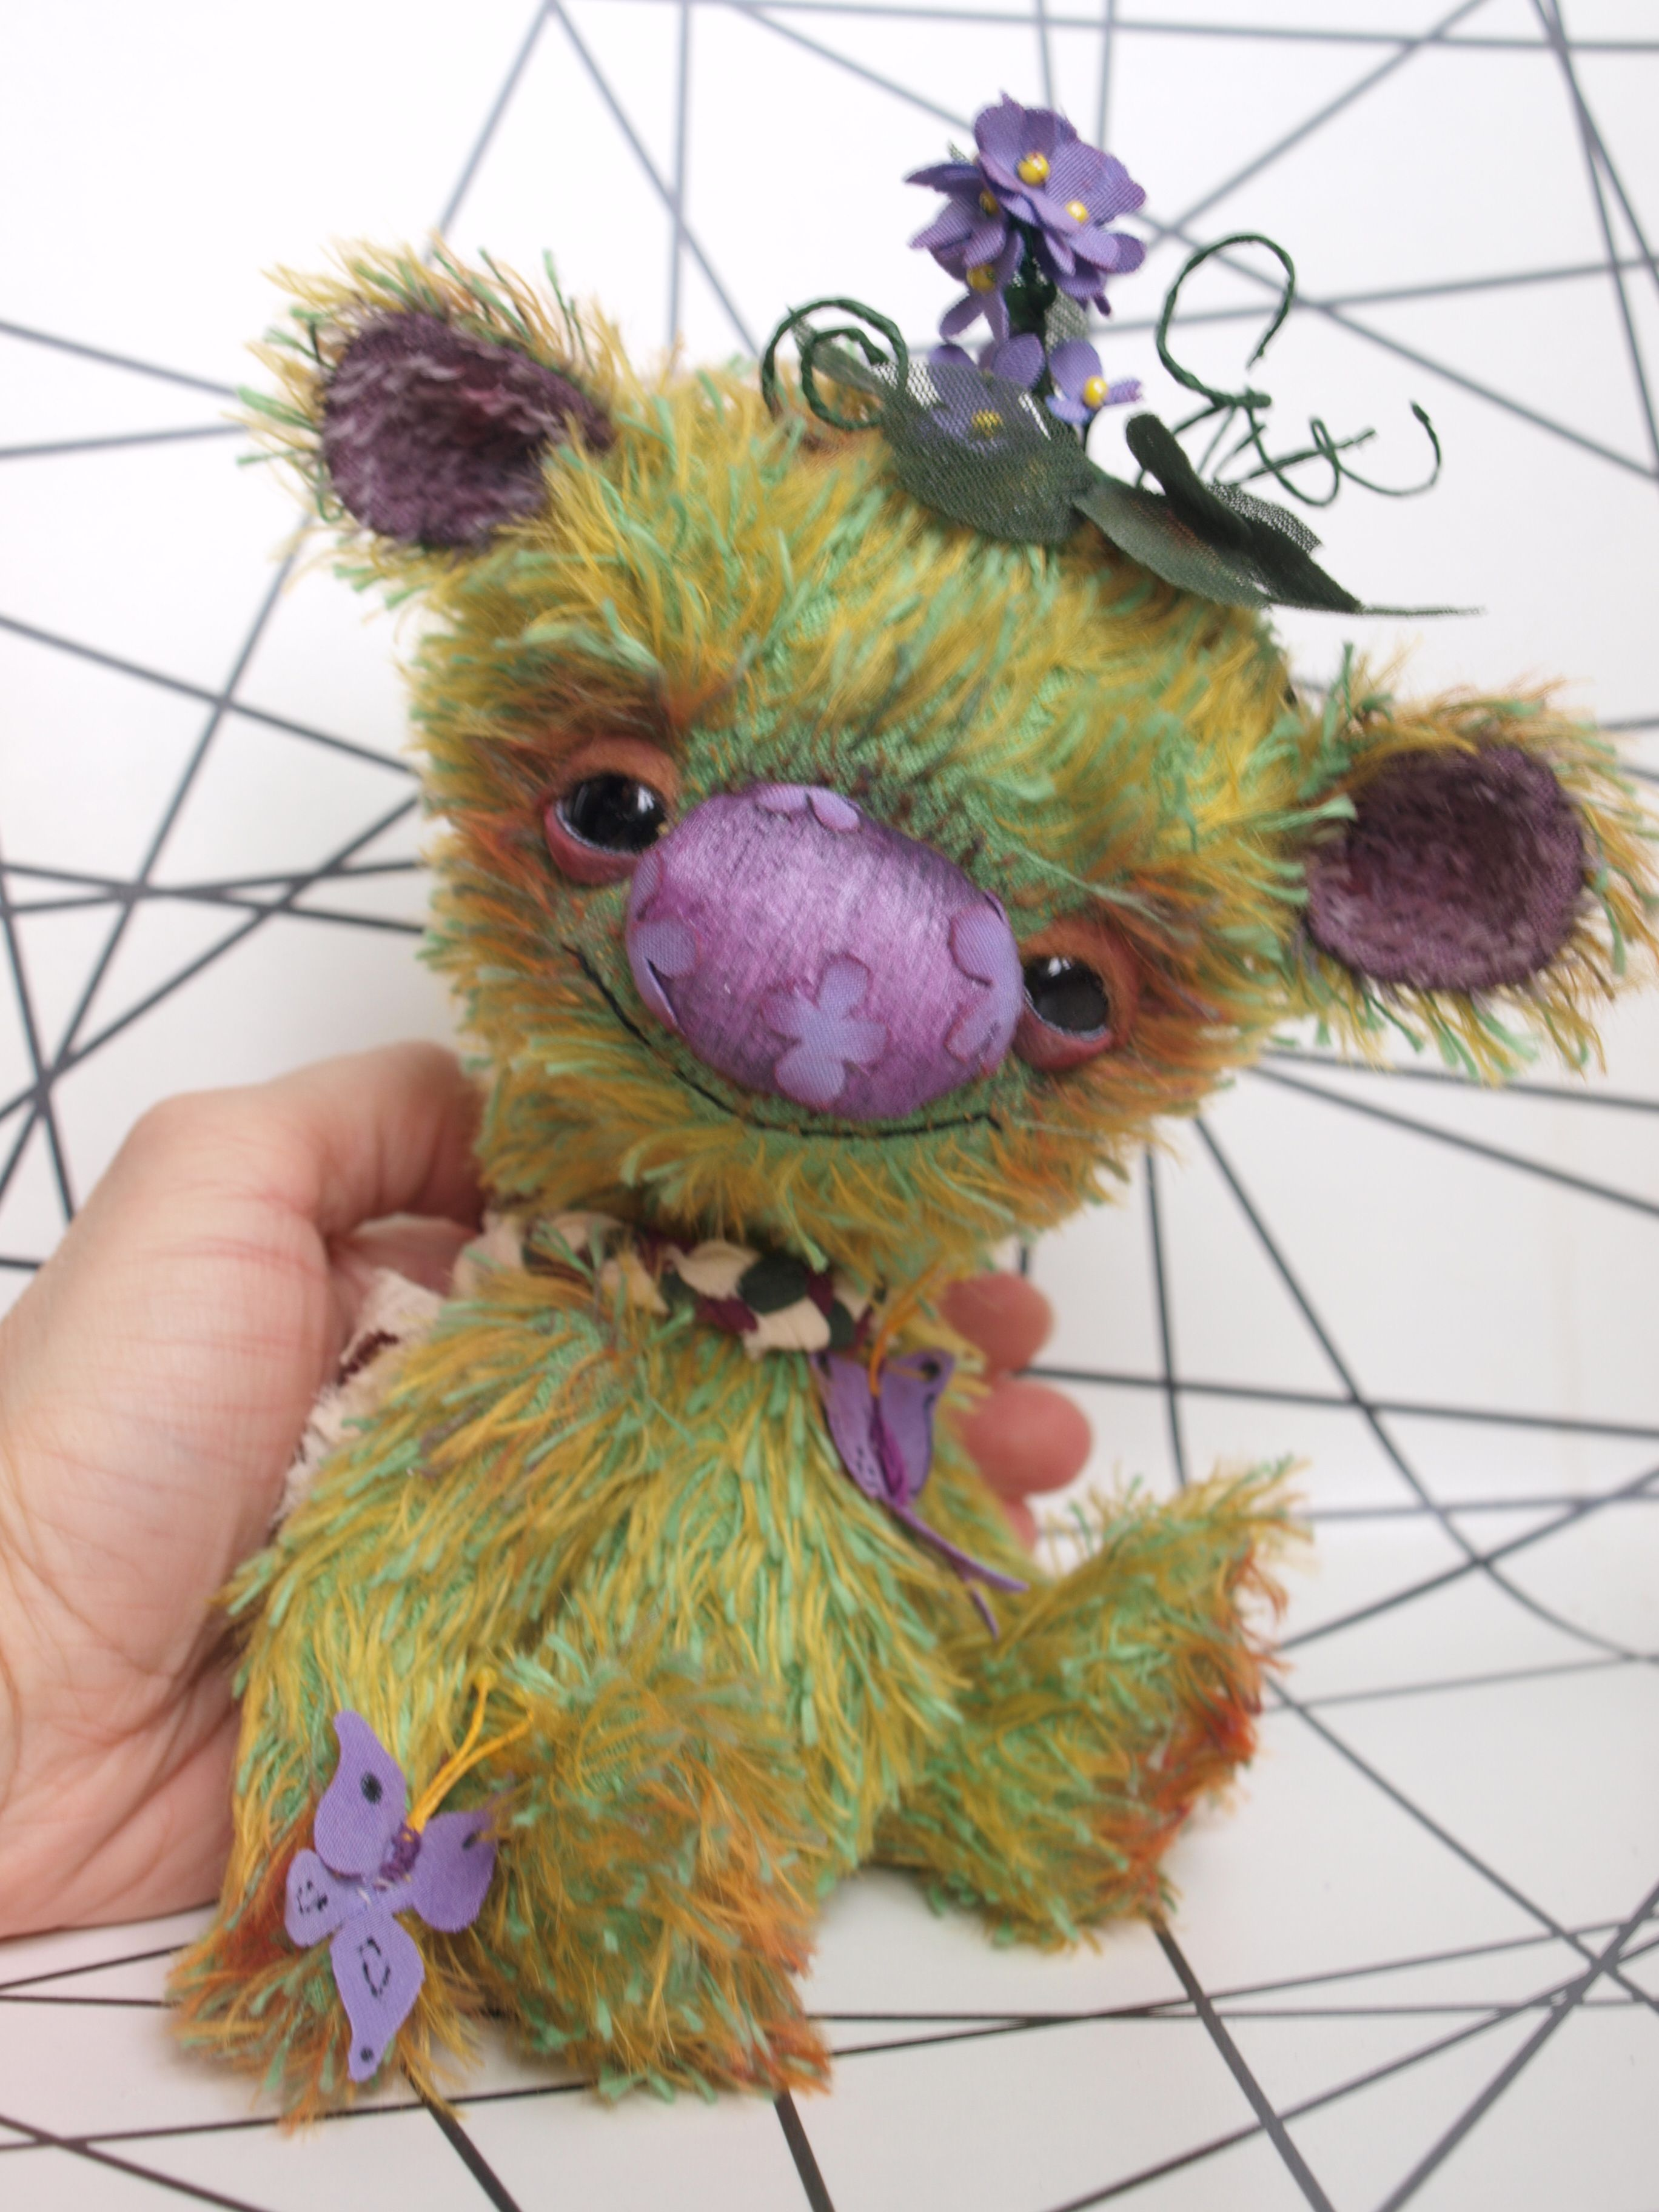 Cute animal pictures image by OOAK Teddy Bears by Starina